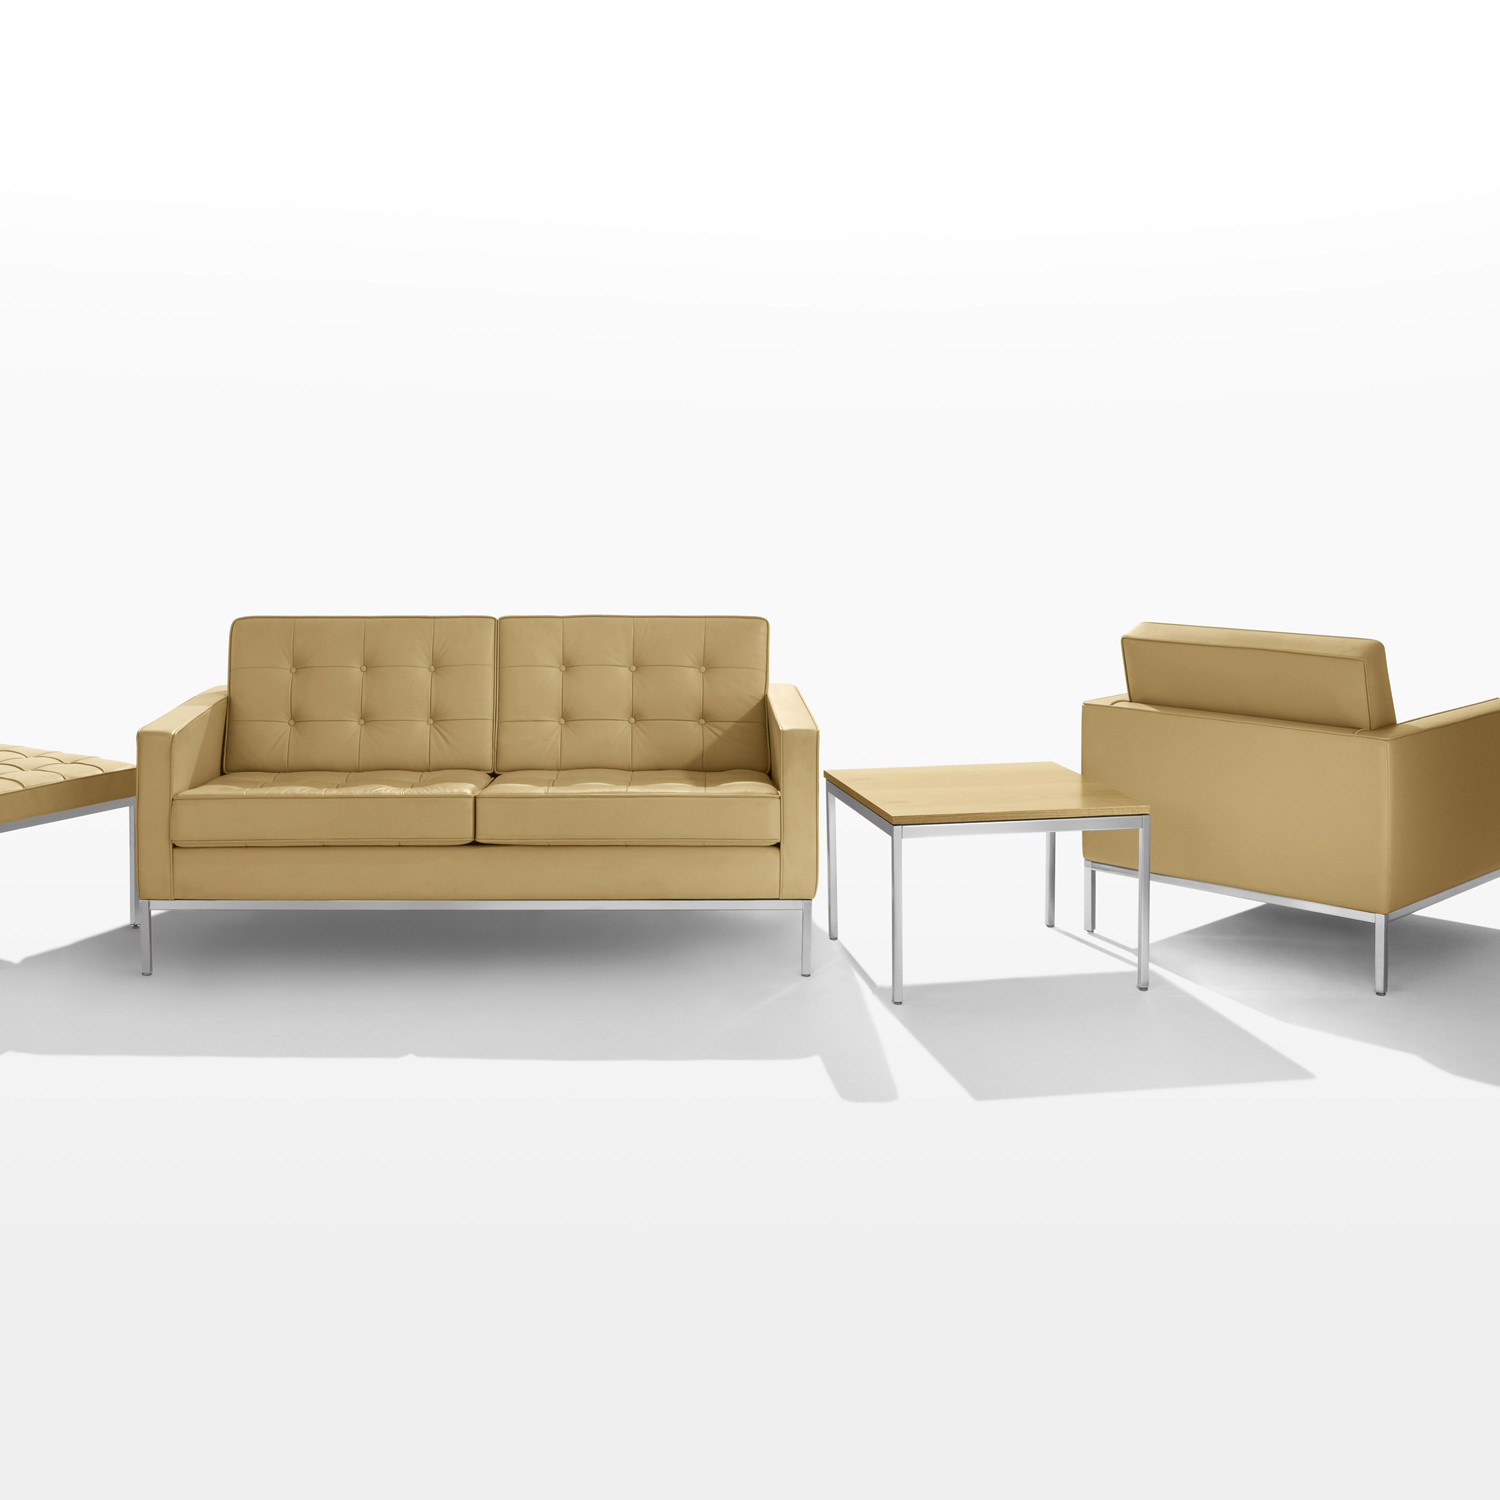 knoll sofas uk orange modern leather sofa florence and armchair collection apres furniture